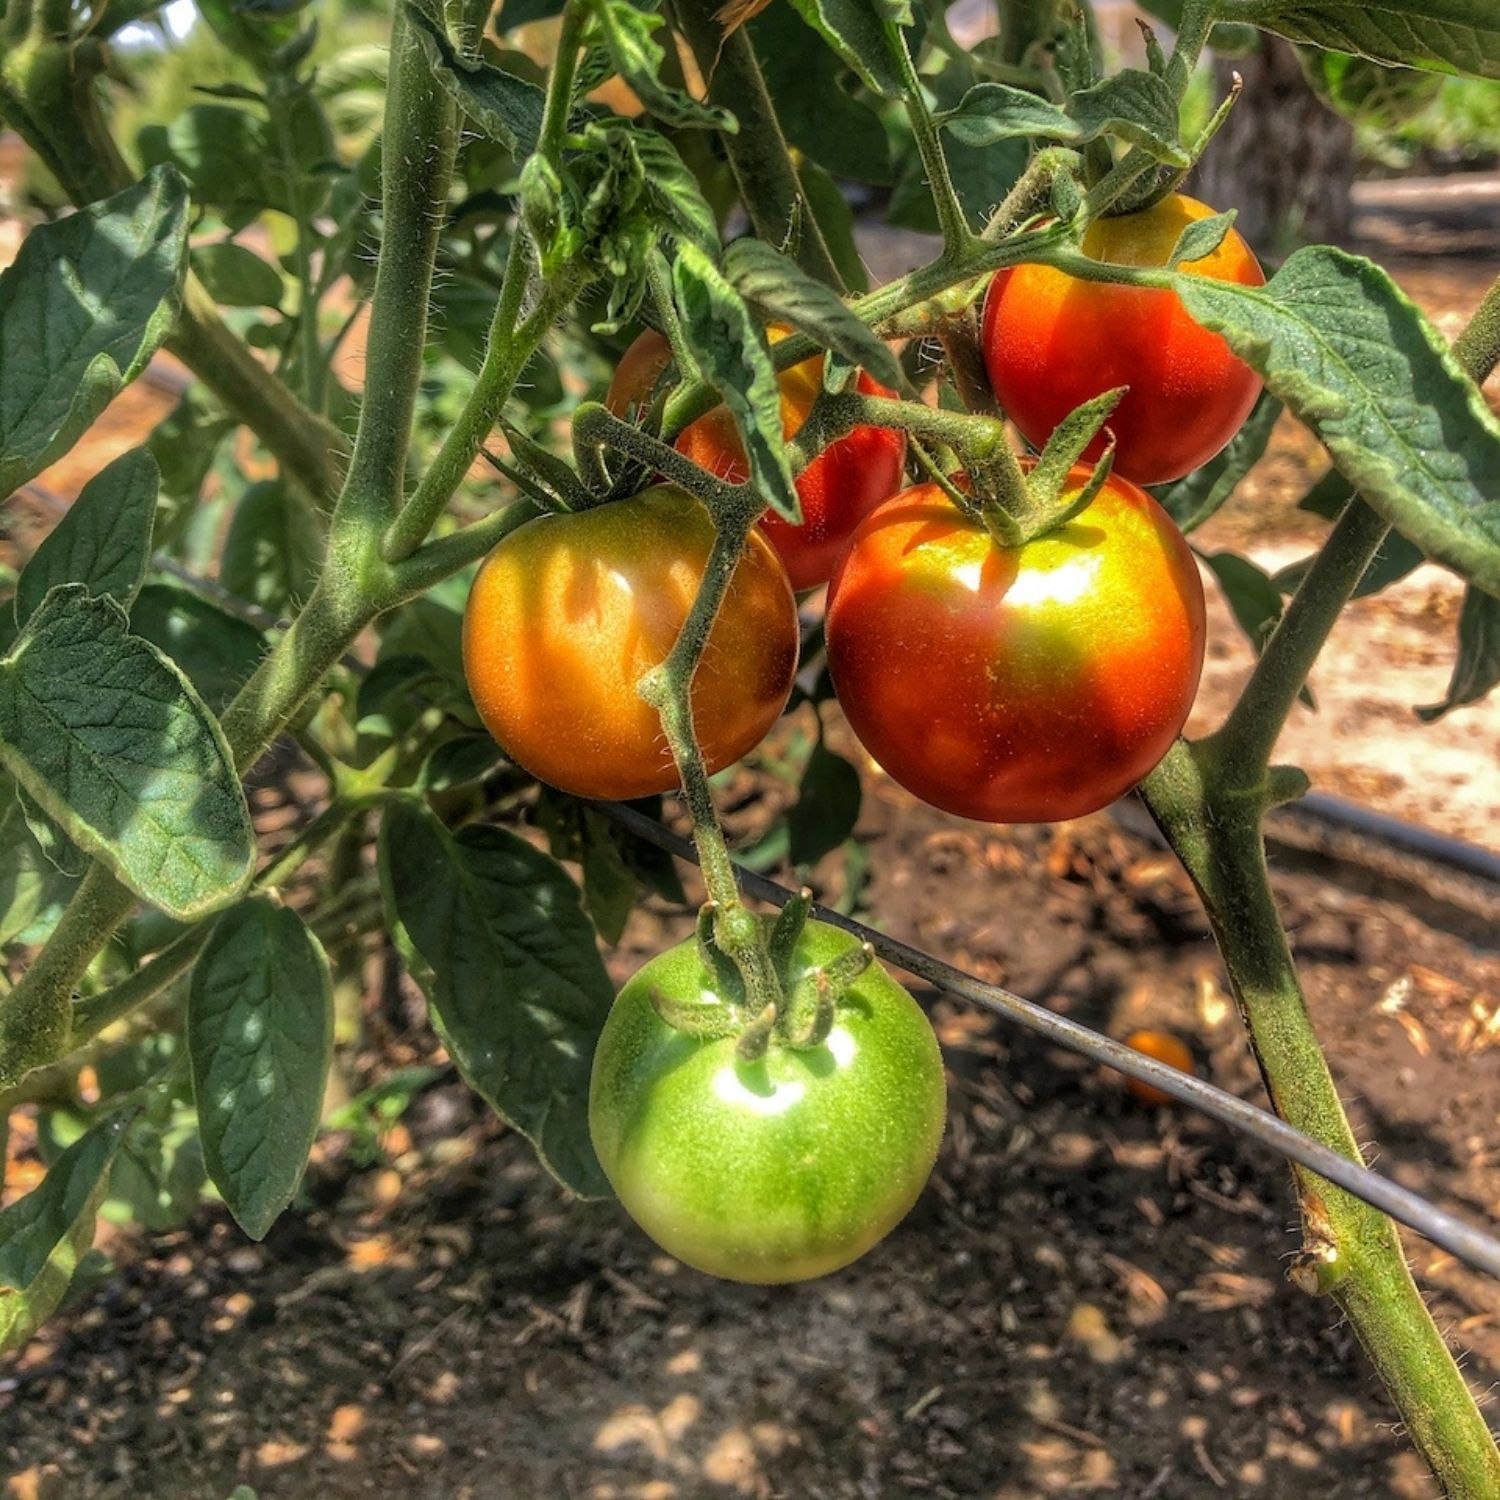 Ripe tomatoes ready to be harvested